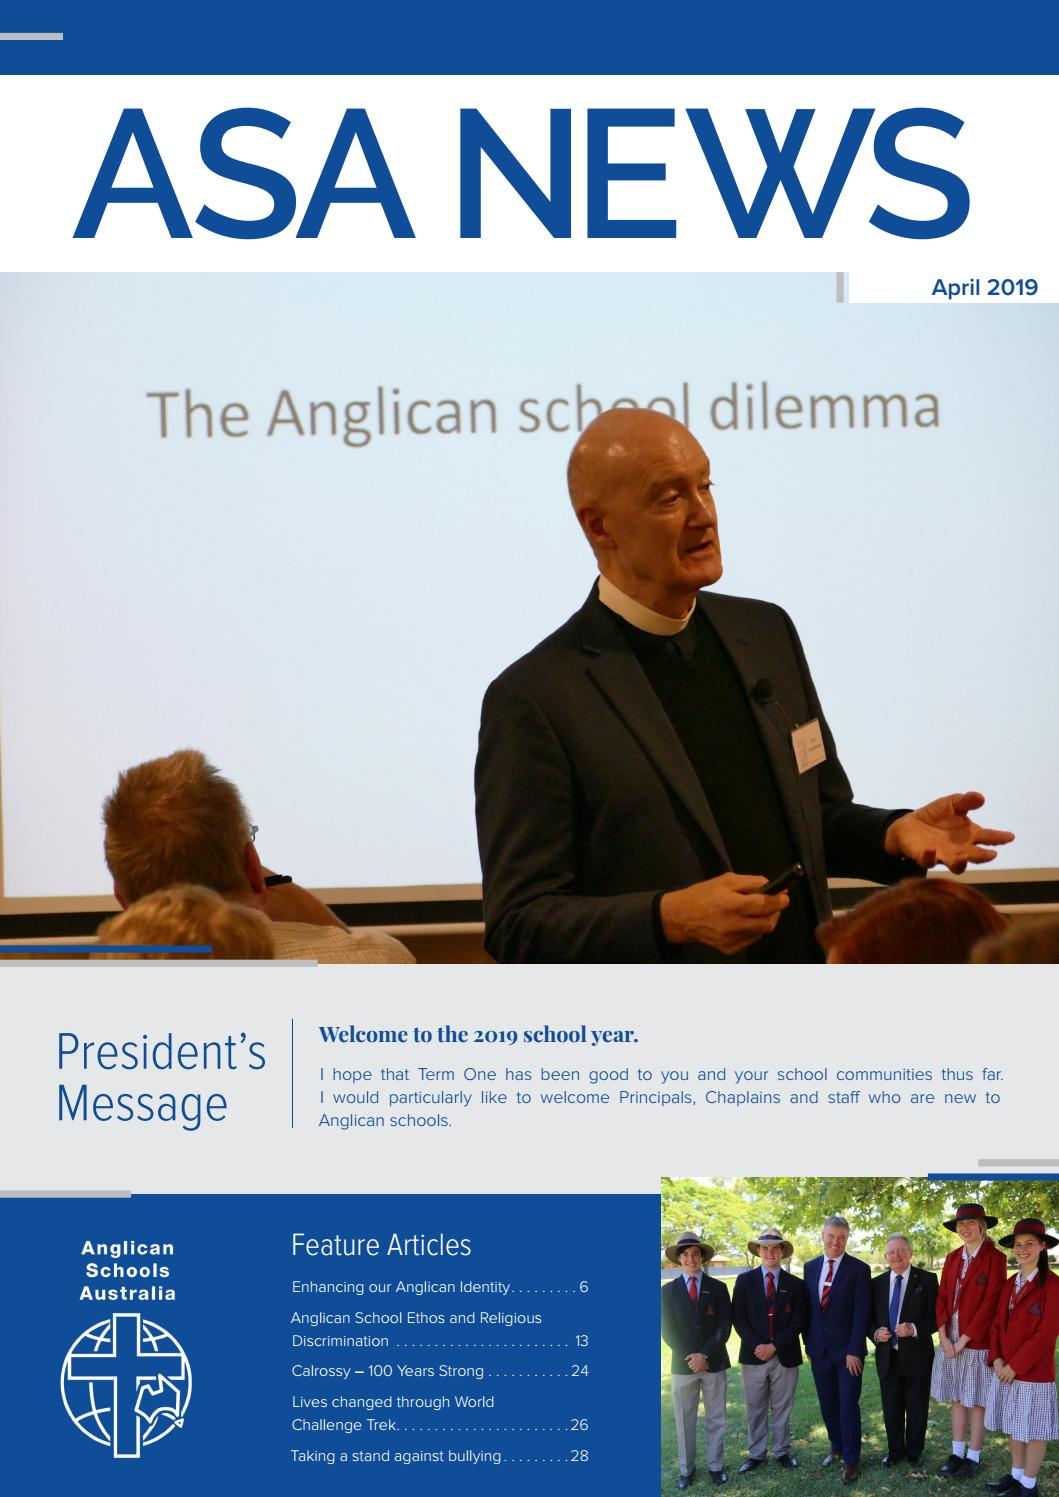 ASA NEWS APRIL 2019 ISSUE by Scotts - issuu